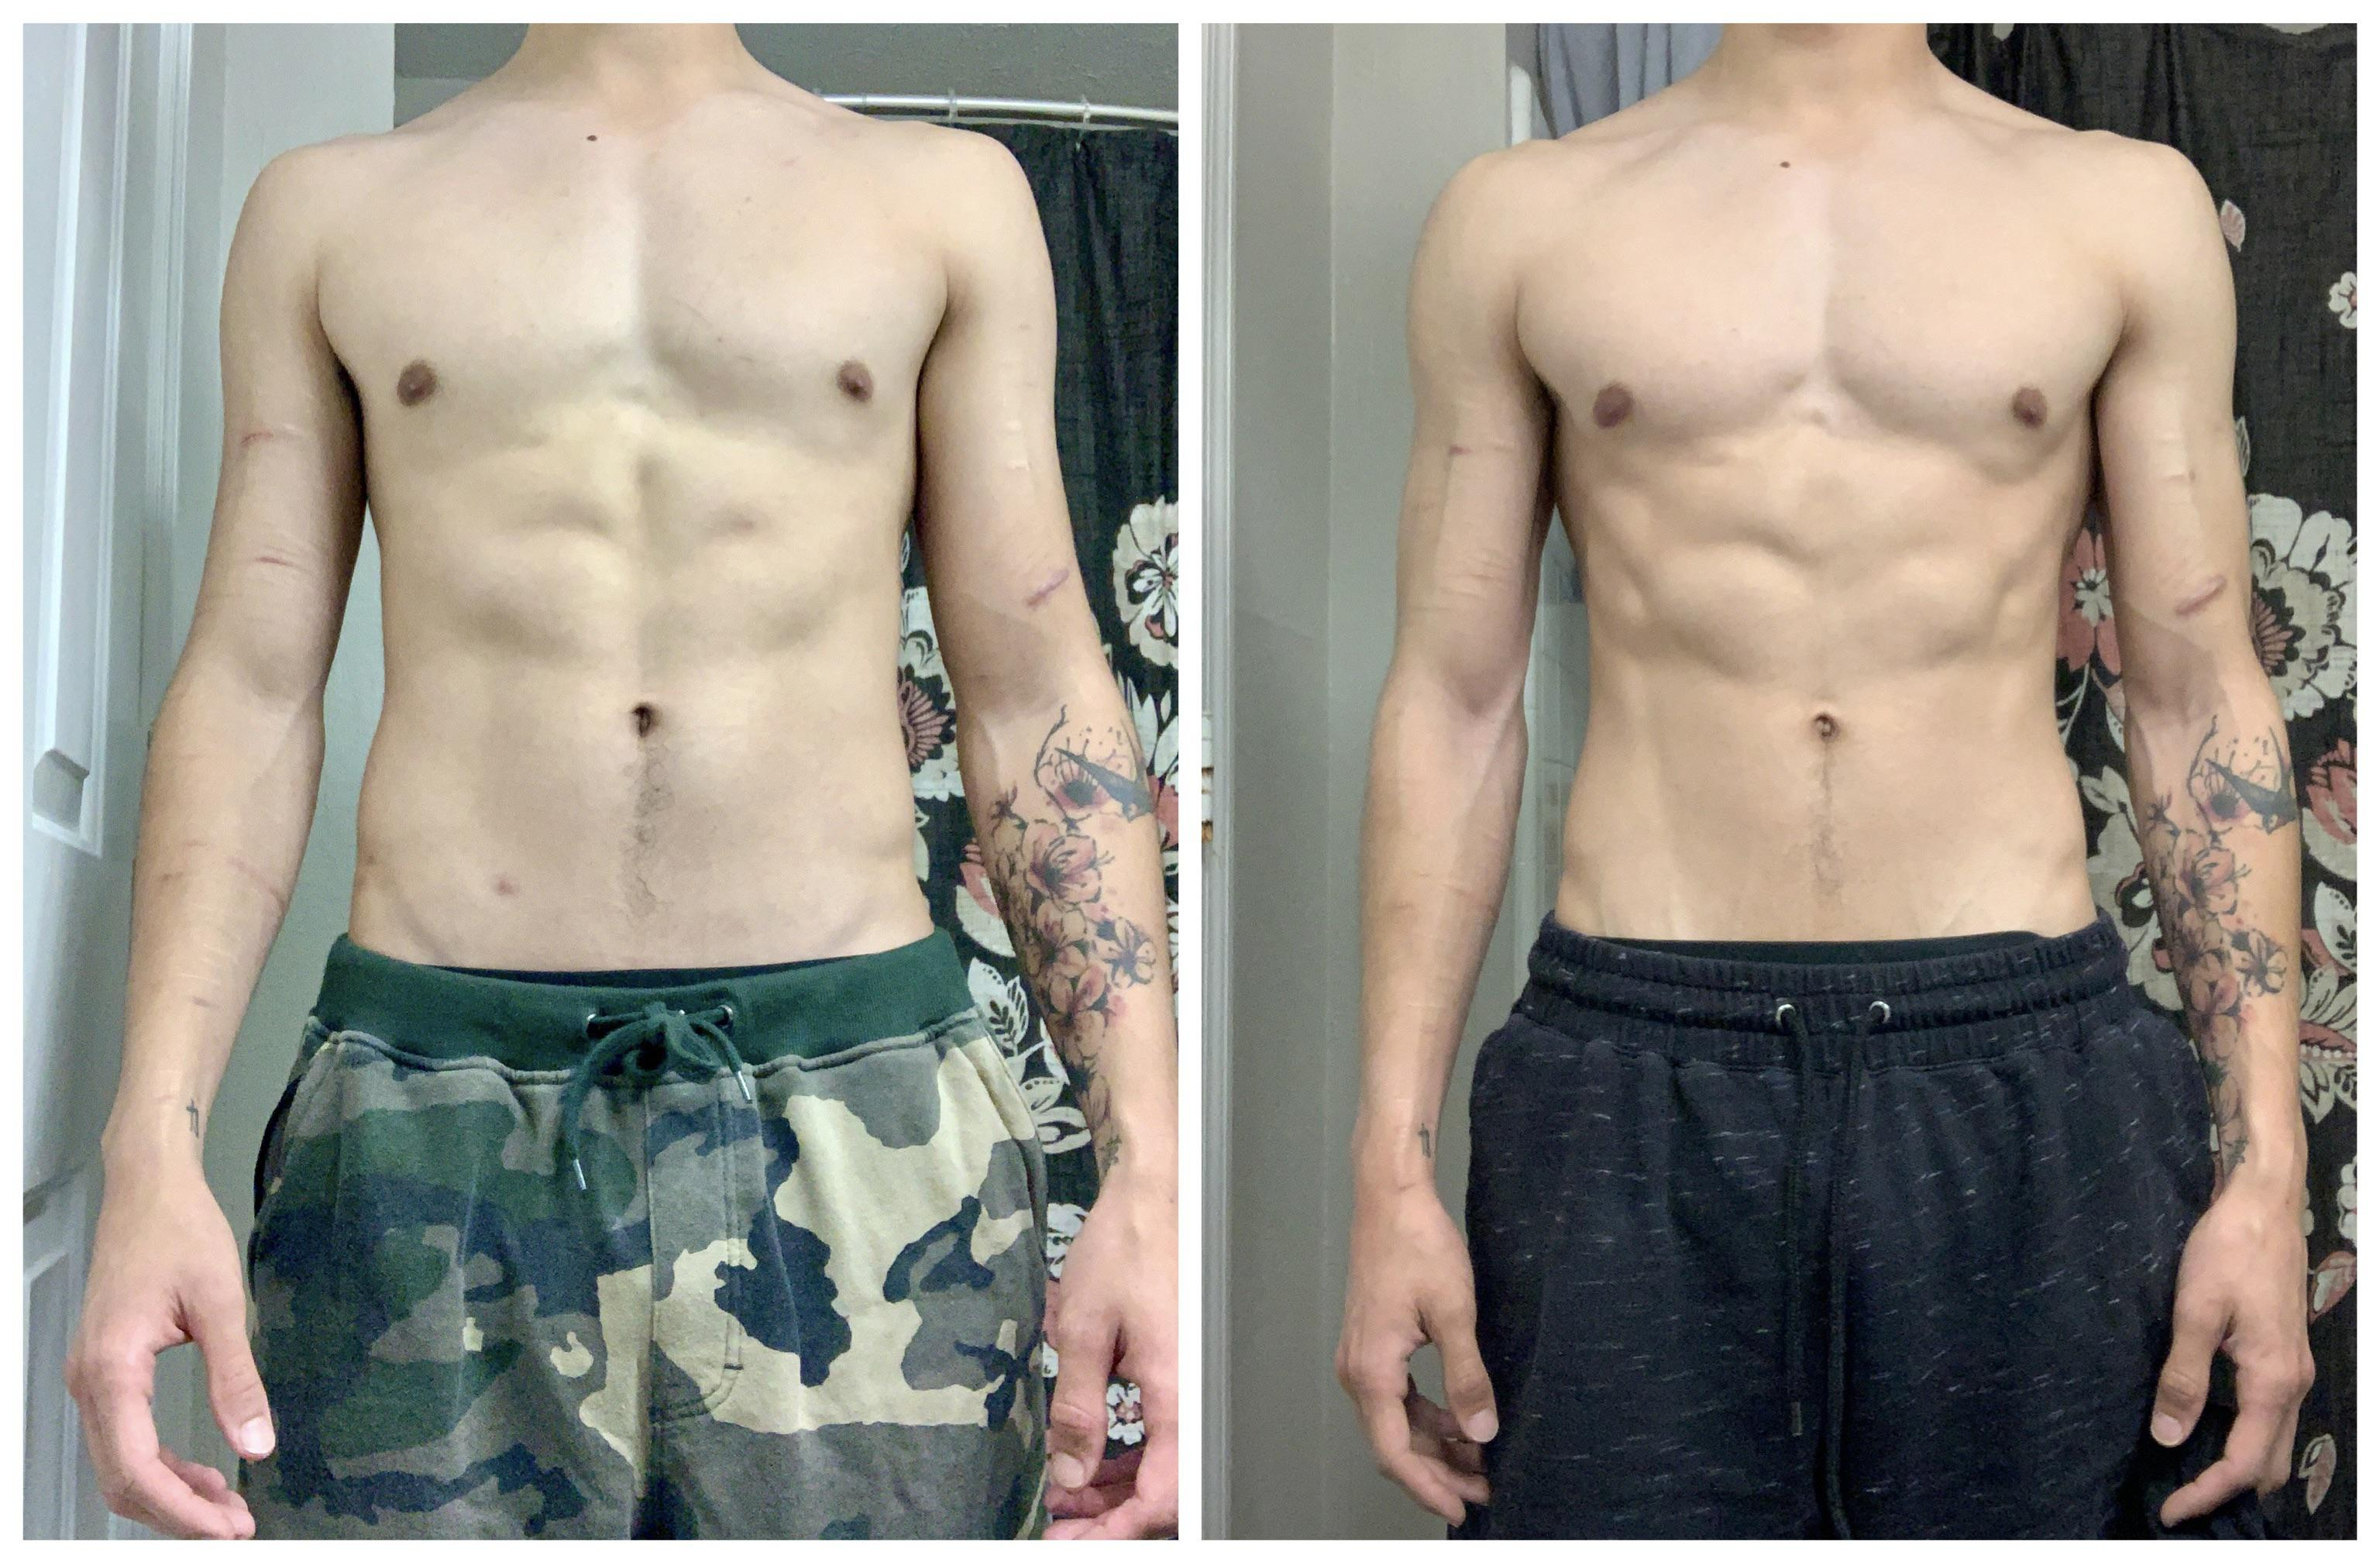 Before and After 30 lbs Muscle Gain 5 feet 10 Male 125 lbs to 155 lbs